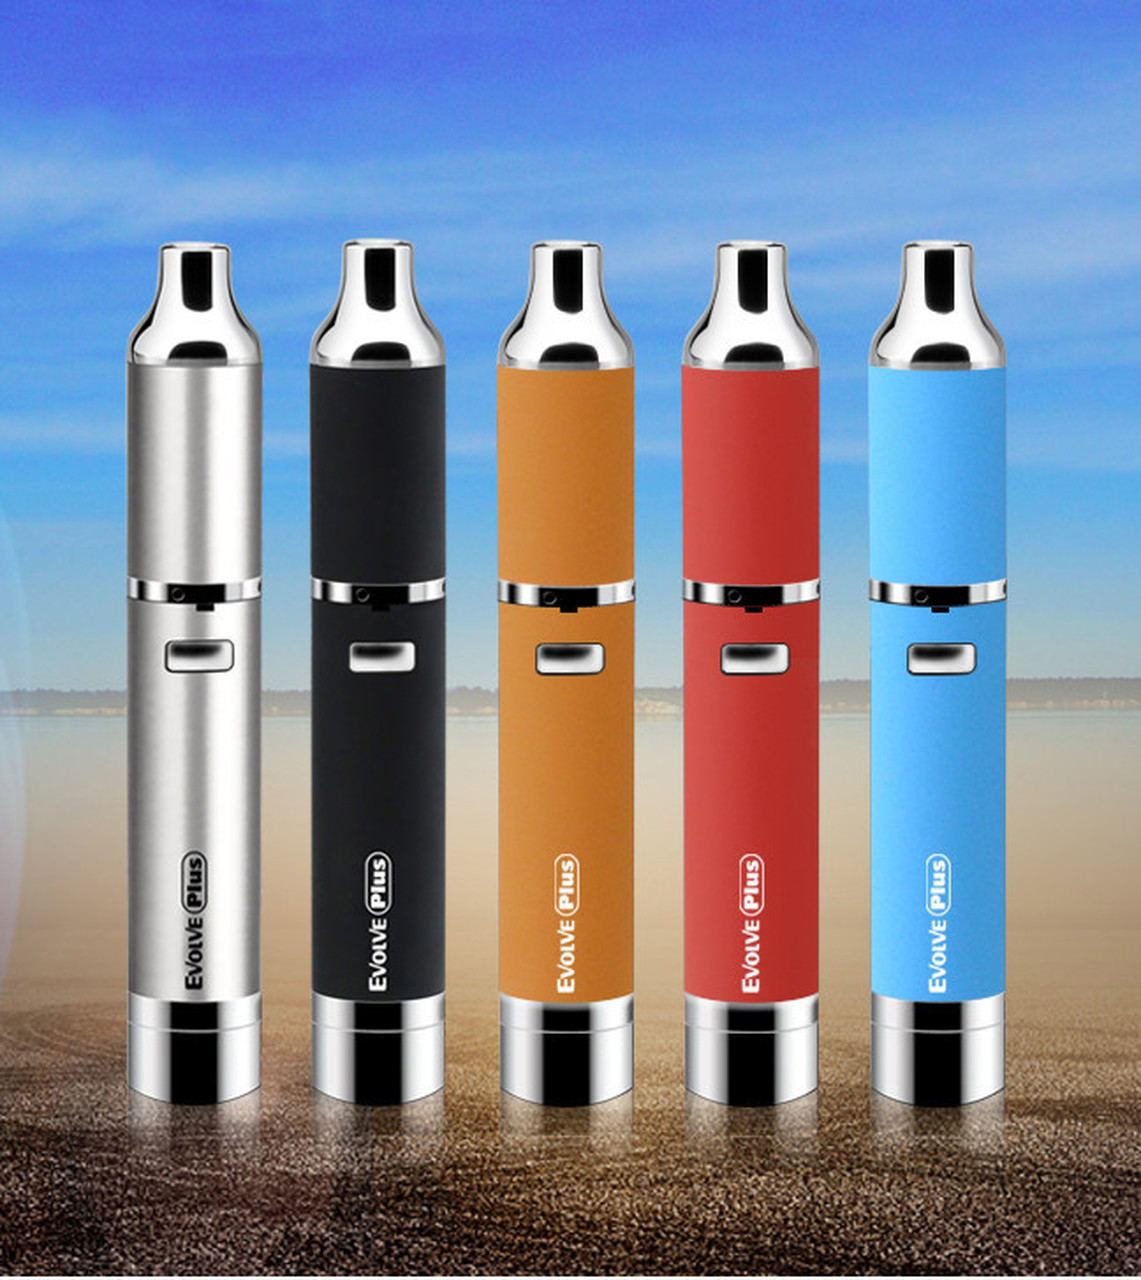 EVOLVE PLUS YOCAN VAPORIZER - Stainless Steel